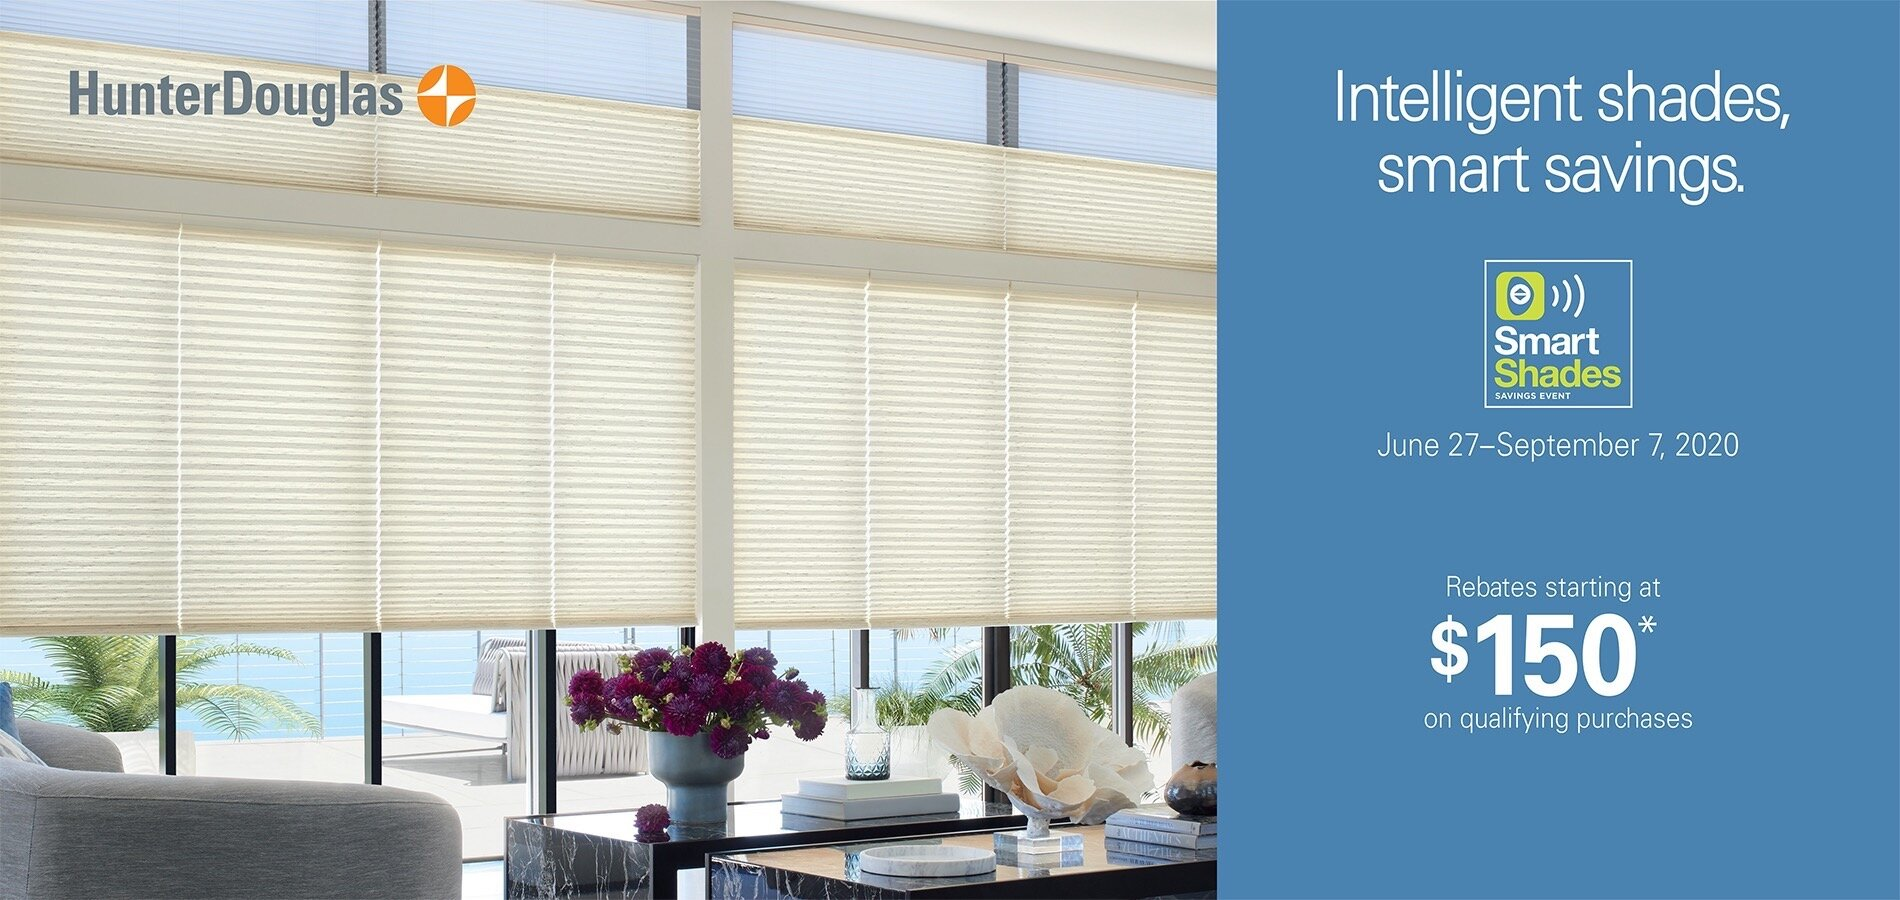 Intelligent shades, smart savings by Hunter Douglas at The Blinds Man